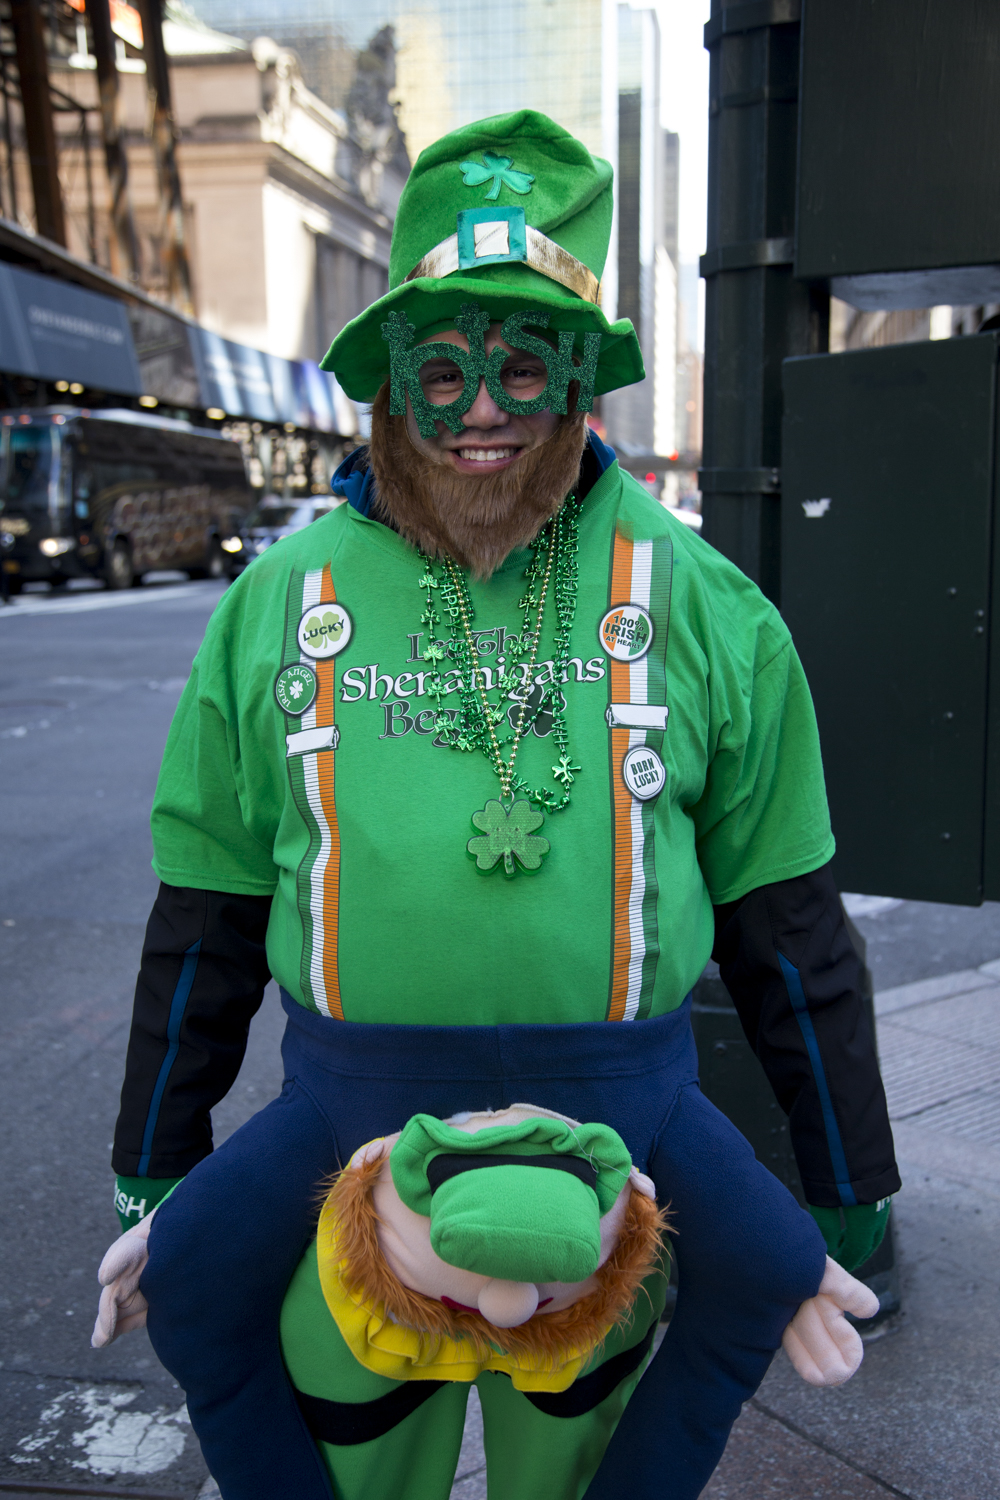 Raymond Defiore from Tarrytown dressed in Irish apparel during the 2018 St. Patrick's Day Parade in Manhattan. (Staten Island Advance/Shira Stoll)